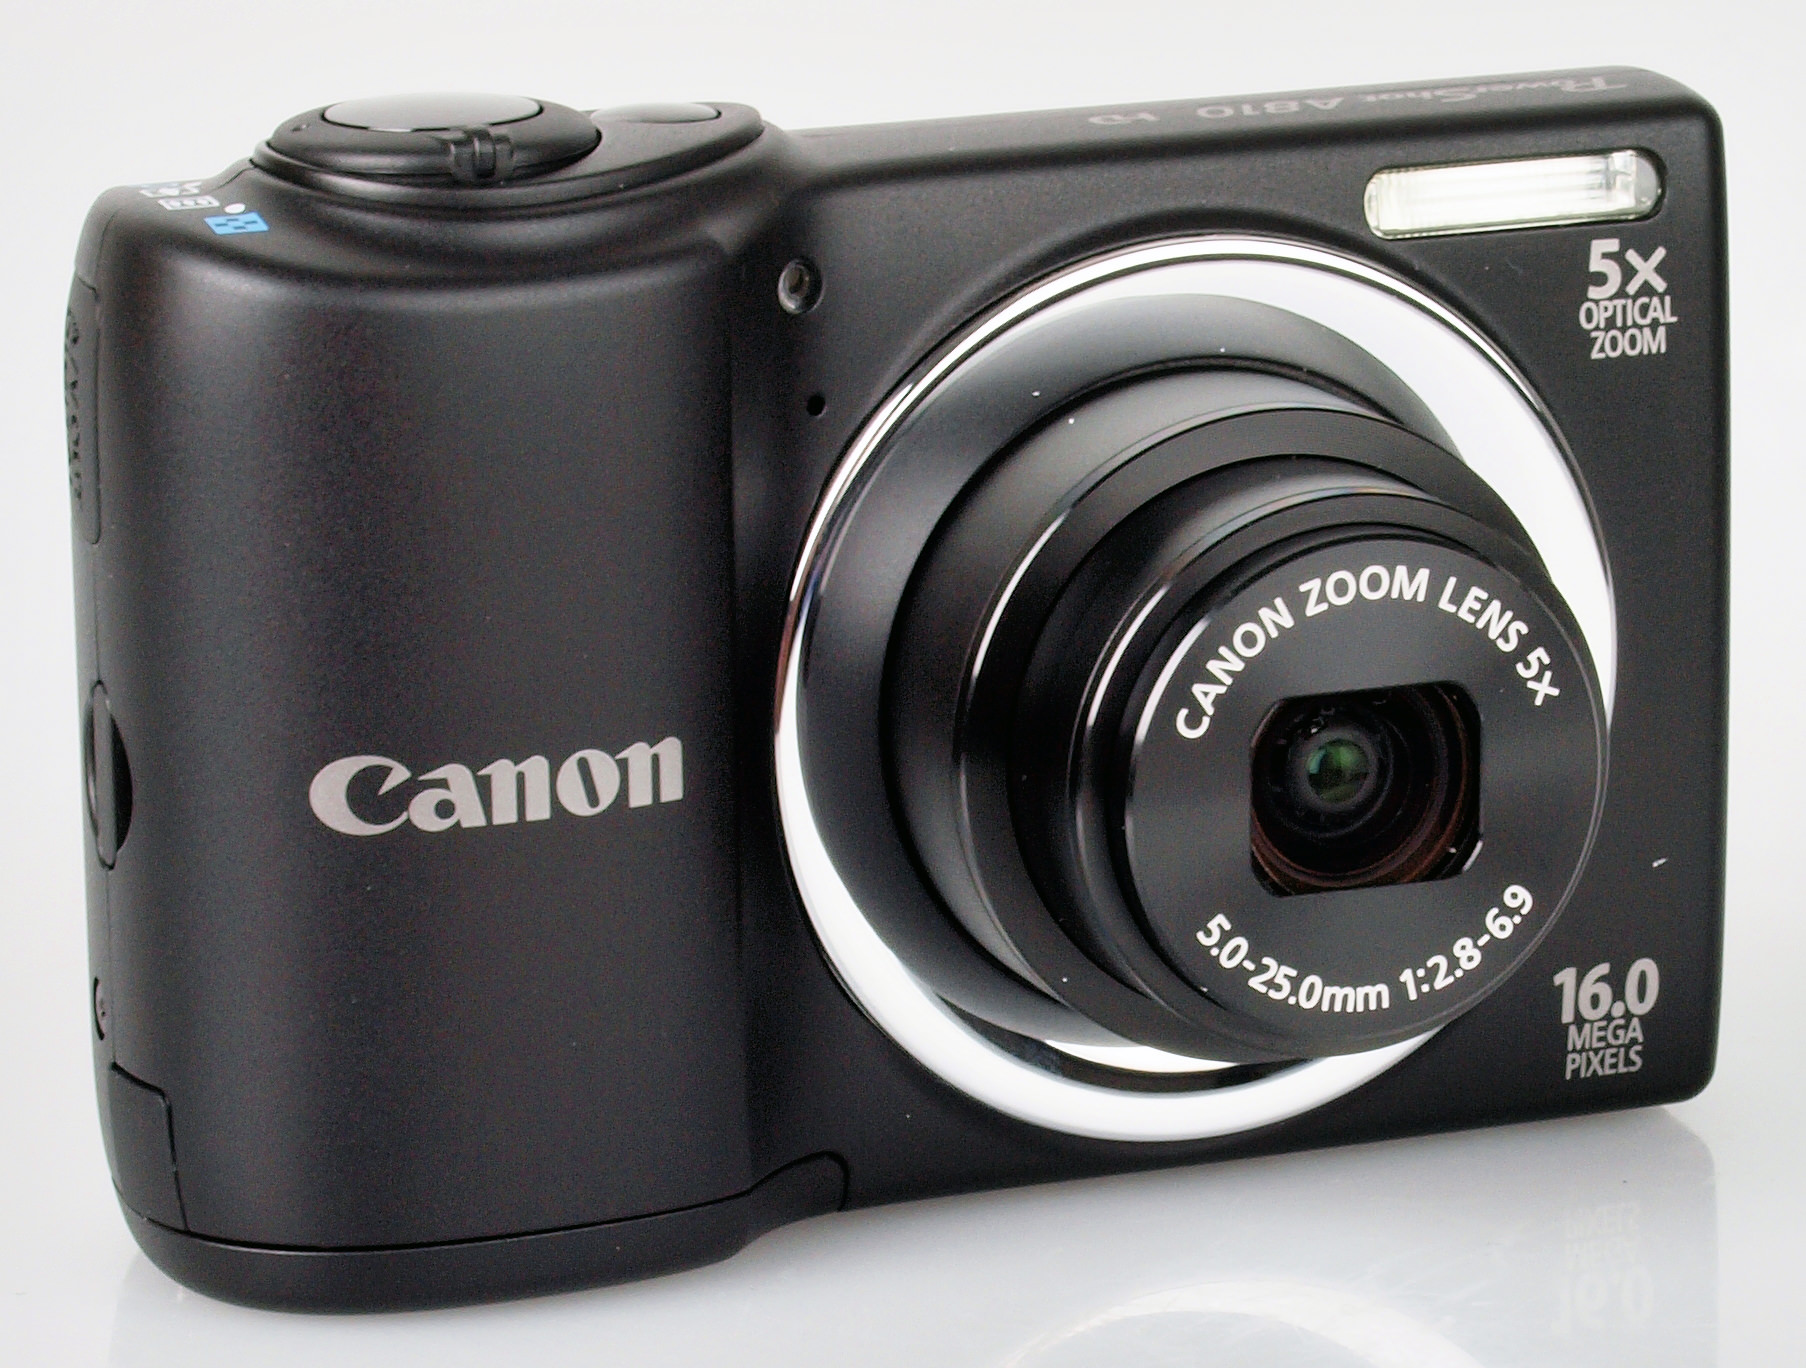 Canon PowerShot A810 Digital Camera Review